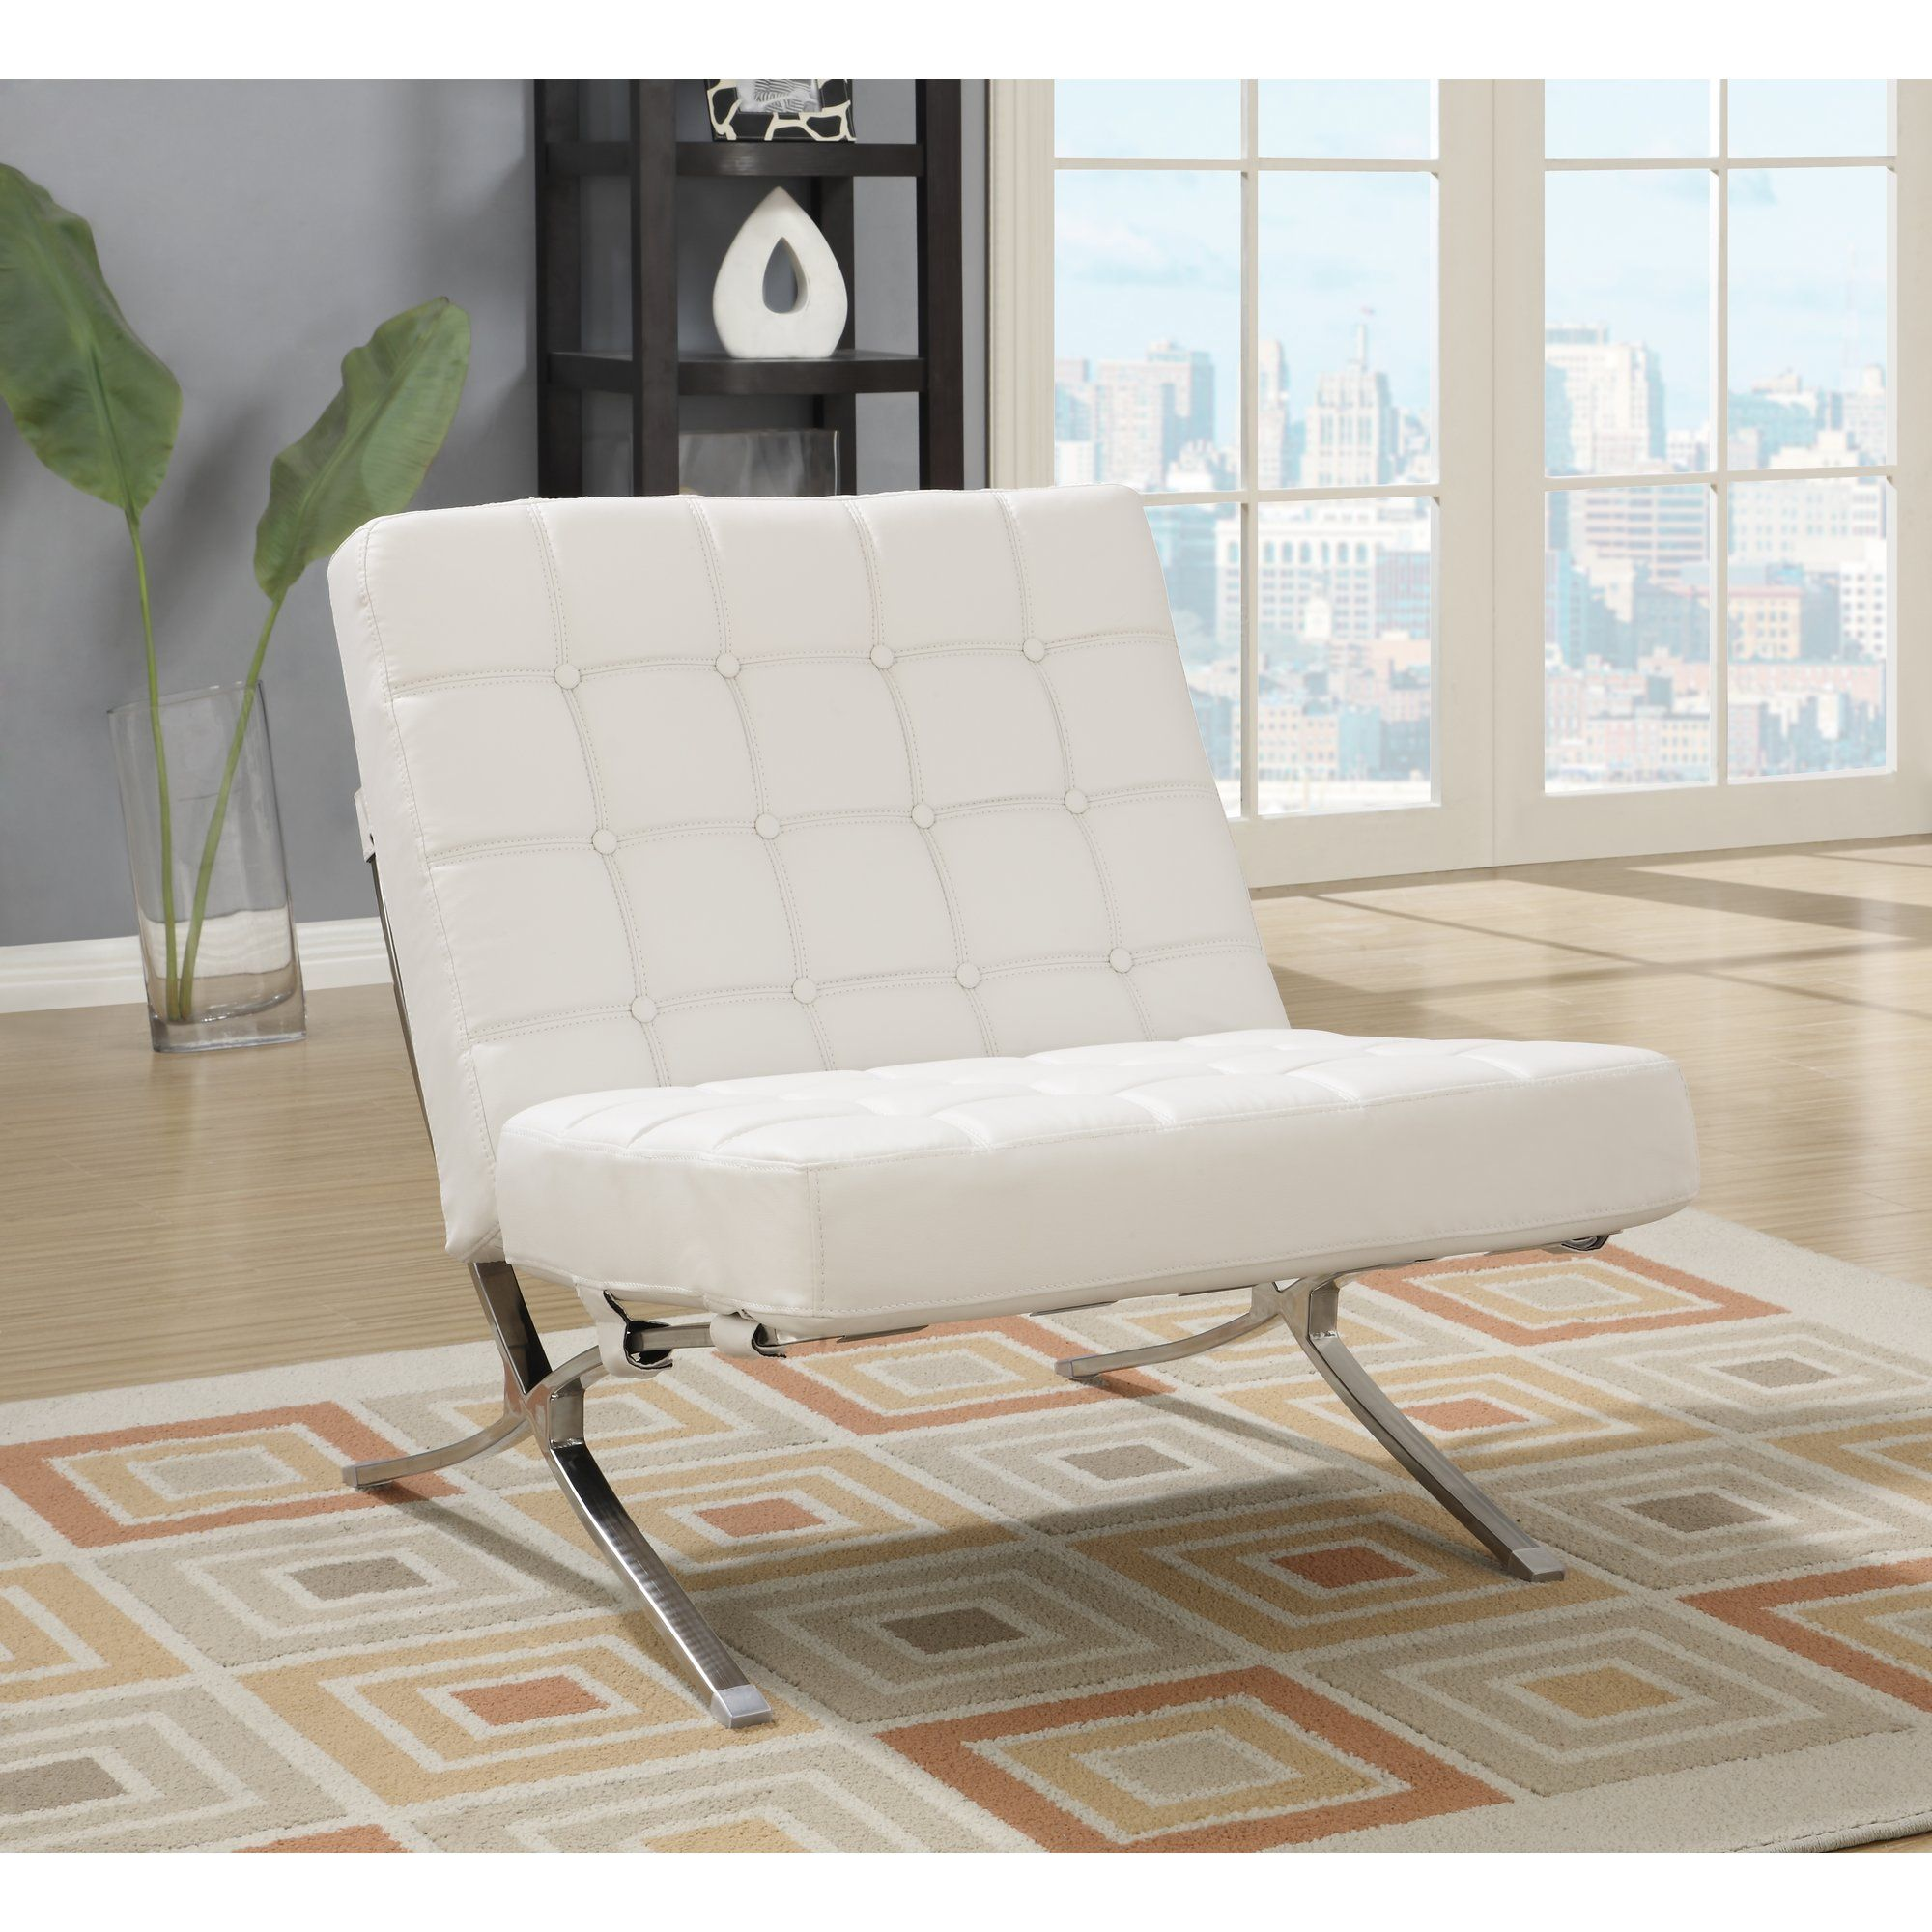 Lounge Chair Furniture Usa Modern Living Room Furniture And  # Muebles Saphire